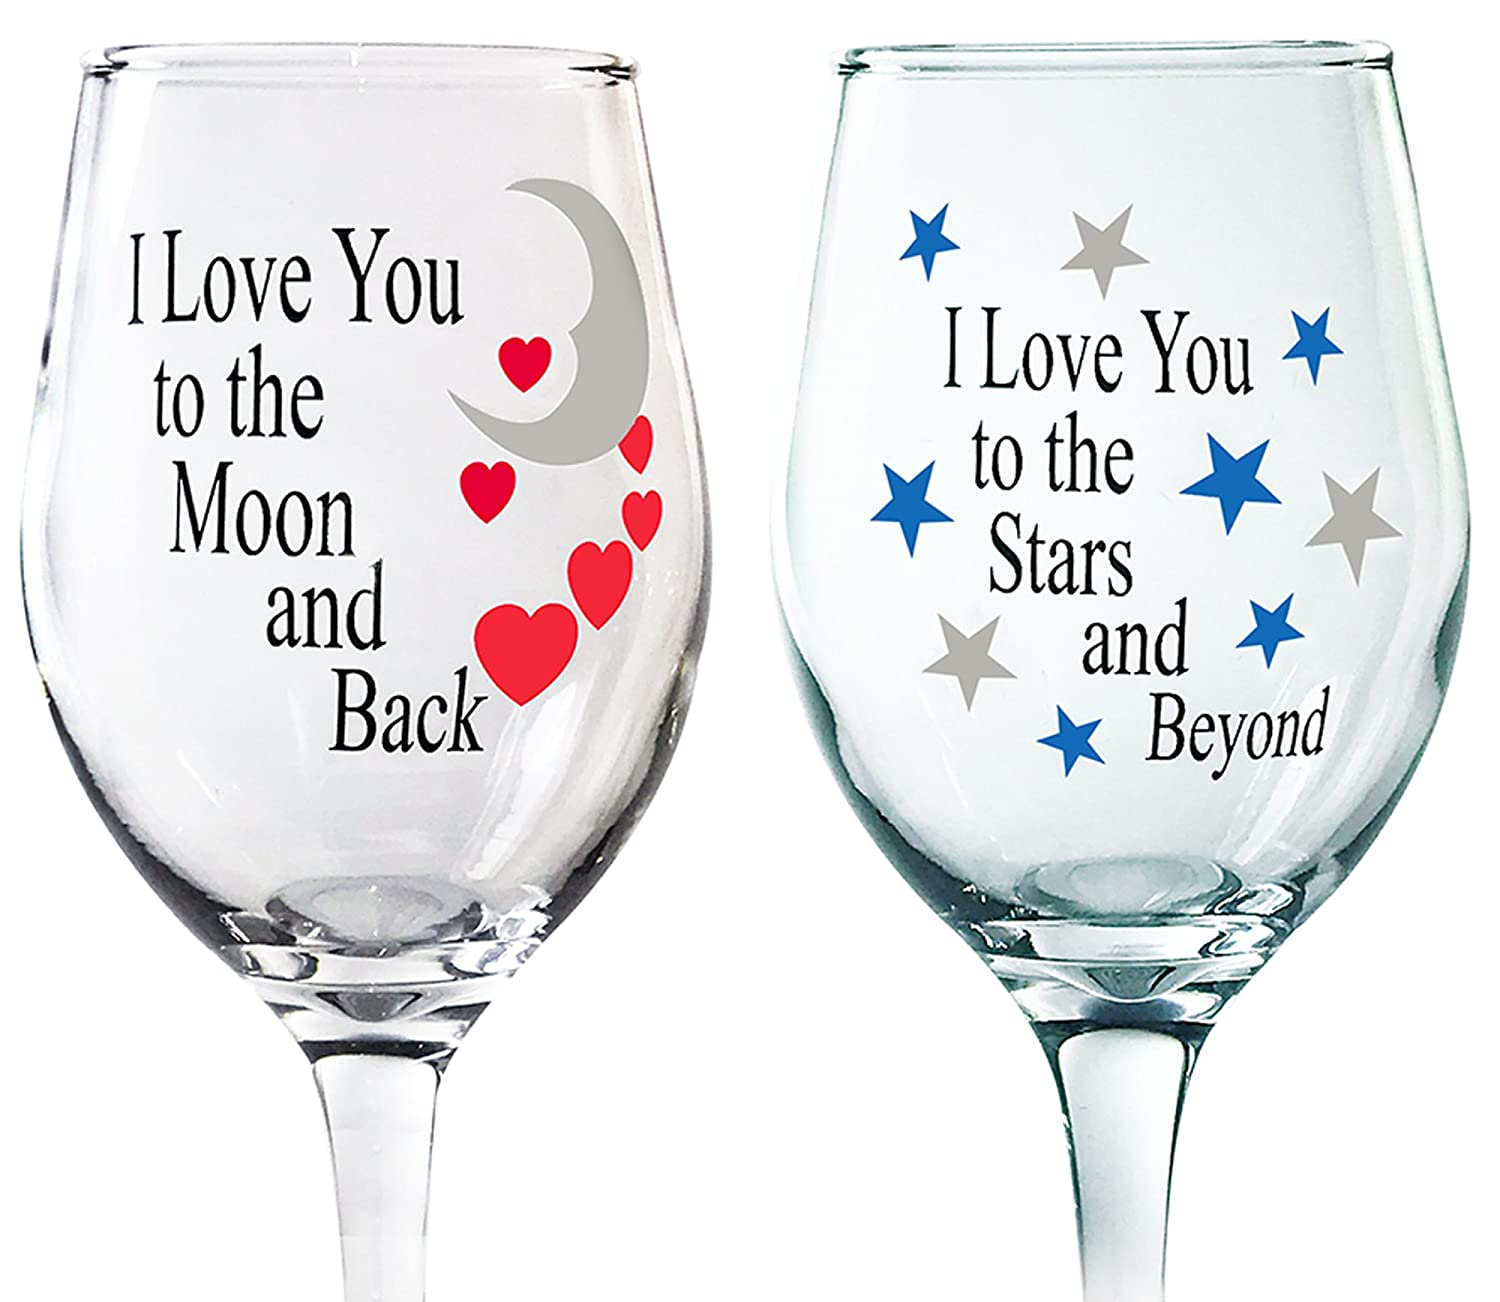 Set of 2 I Love You to the Moon and Back and Stars and Beyond His and Her Romantic Wine Glass Set Banberry Designs 6063 Love You More Wine Glasses for Couples